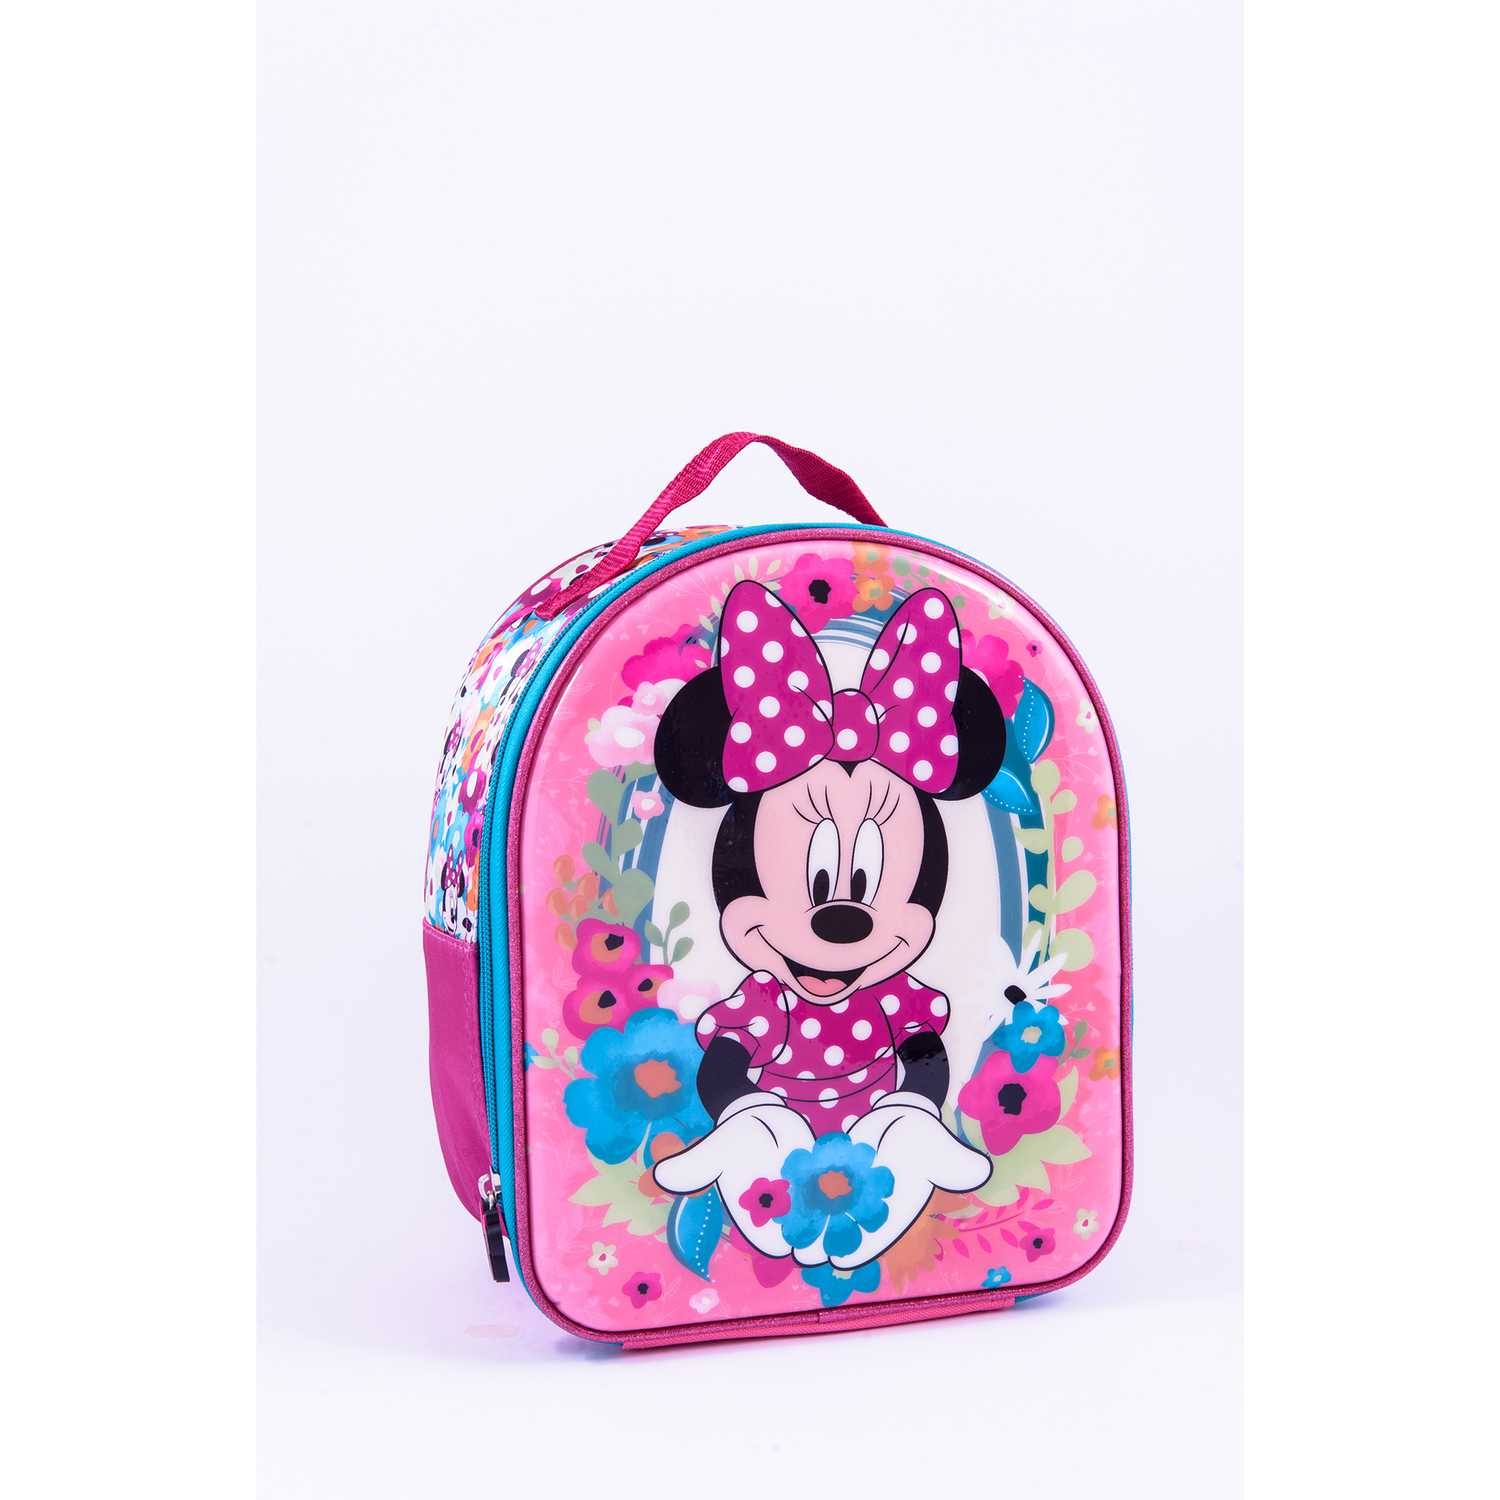 Lonchera de Niña Scool Coral 9 scool  minnie lonch strong dlx